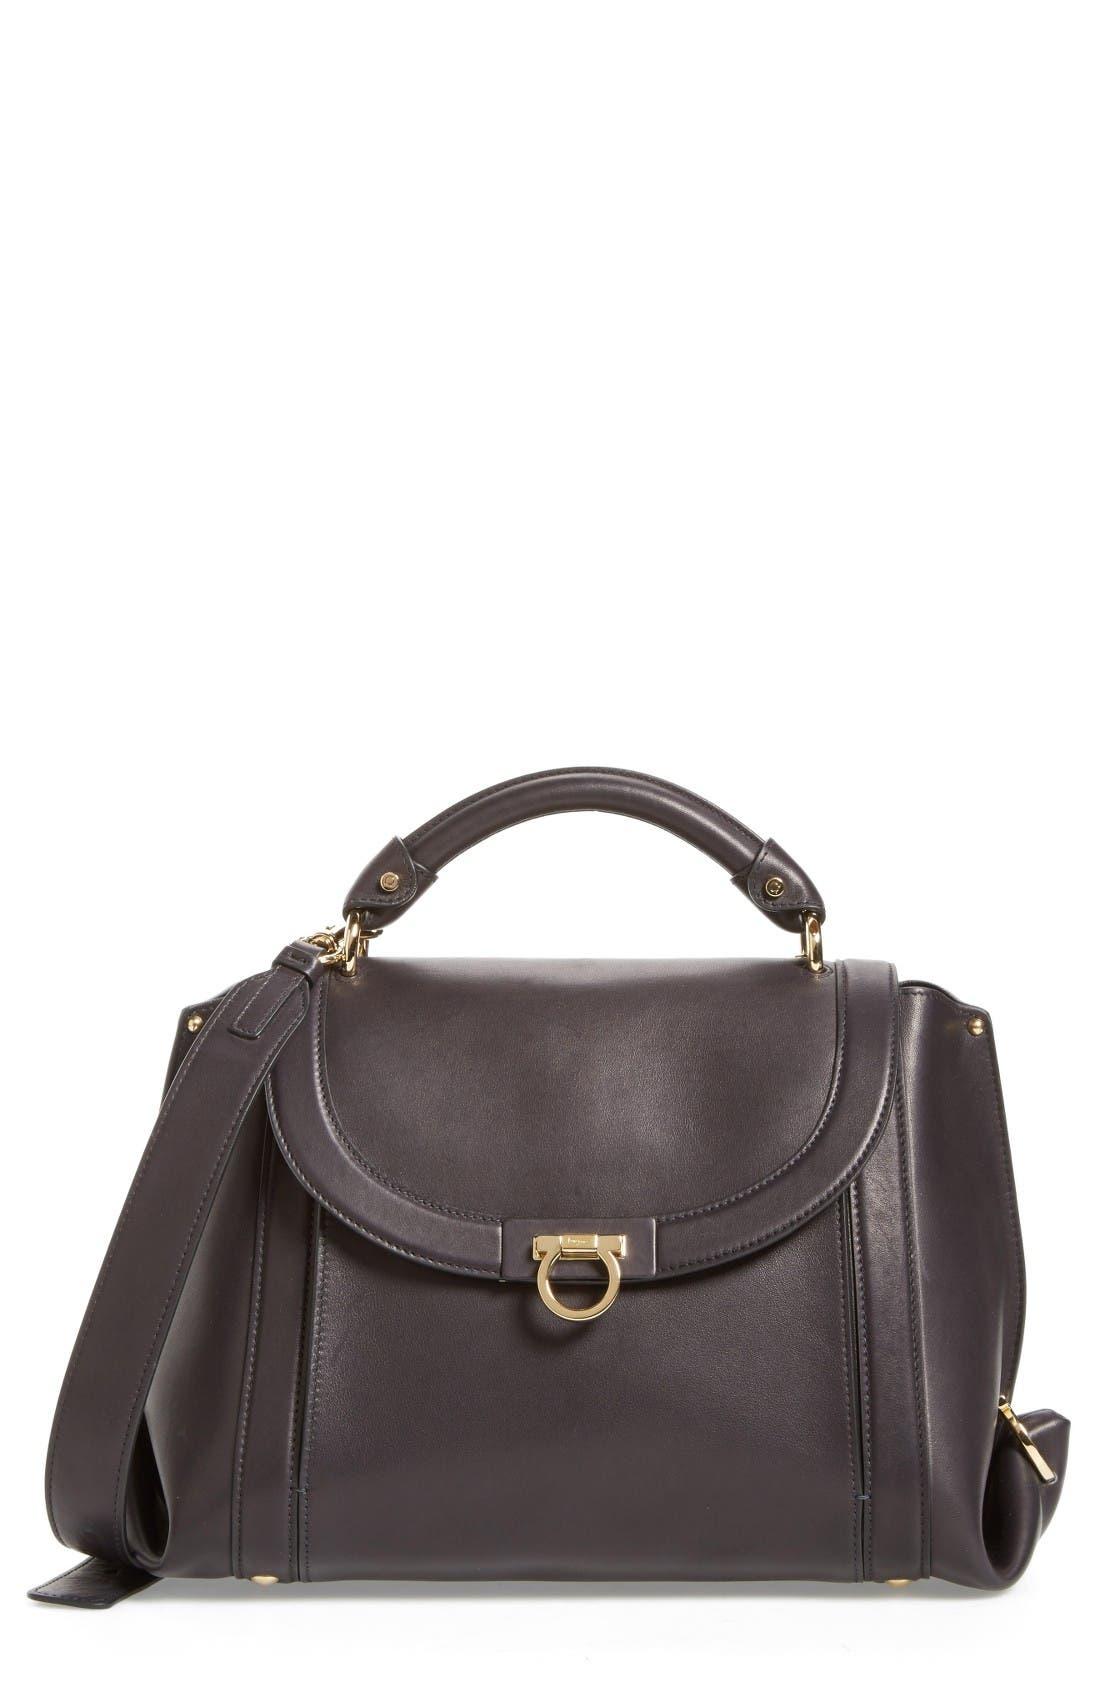 Medium Leather Satchel,                         Main,                         color, Nero